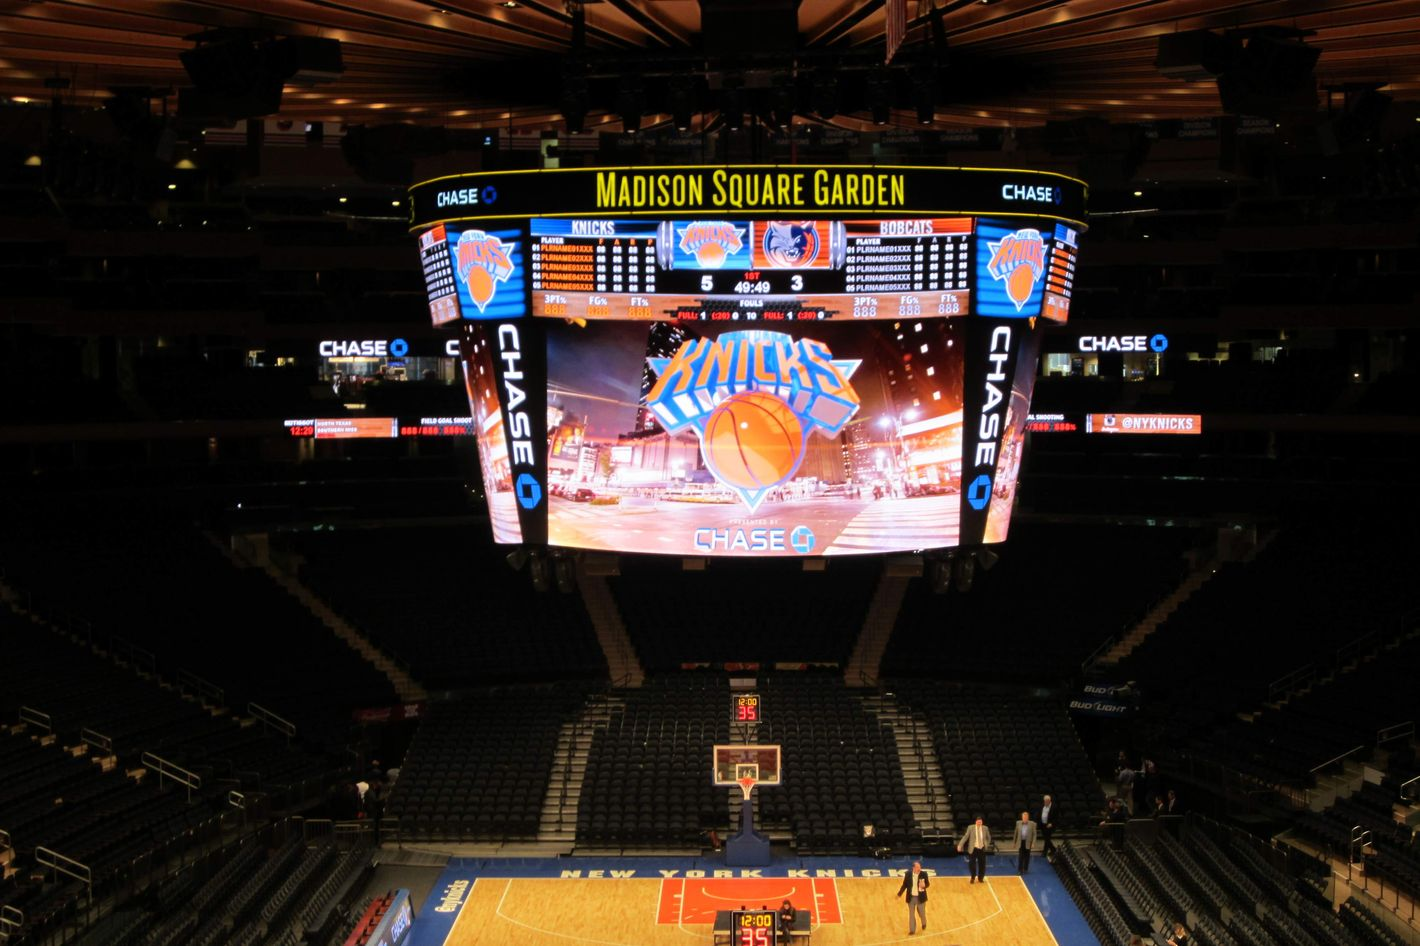 Superb Hereu0027s What The Renovated Madison Square Garden Looks Like